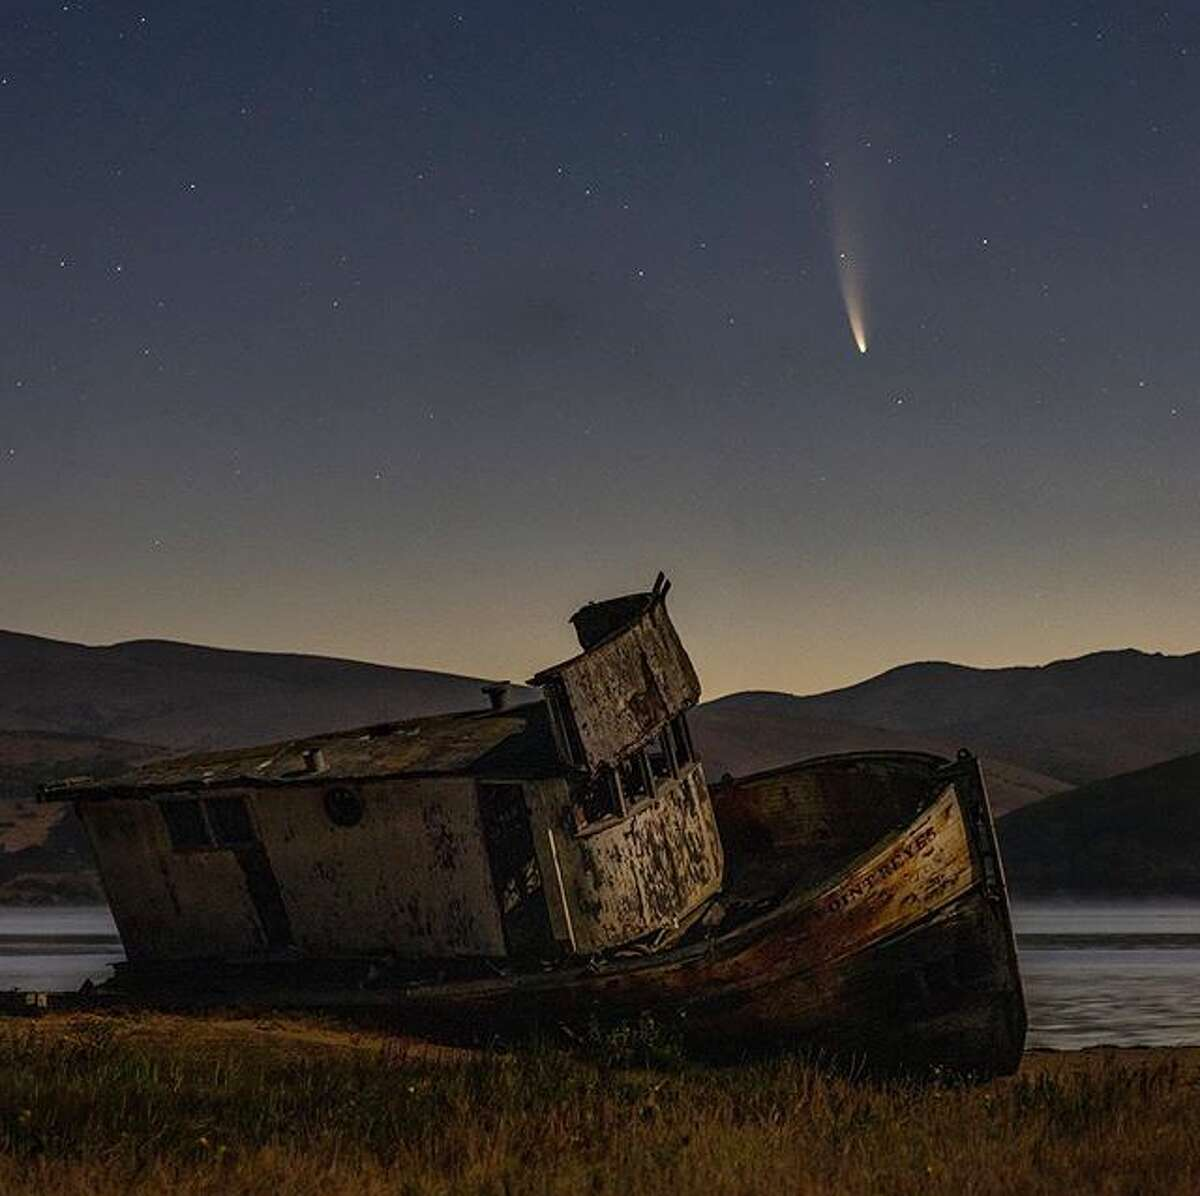 @andre.takes.photos captured Comet Neowise near the Pt. Reyes ship wreck.